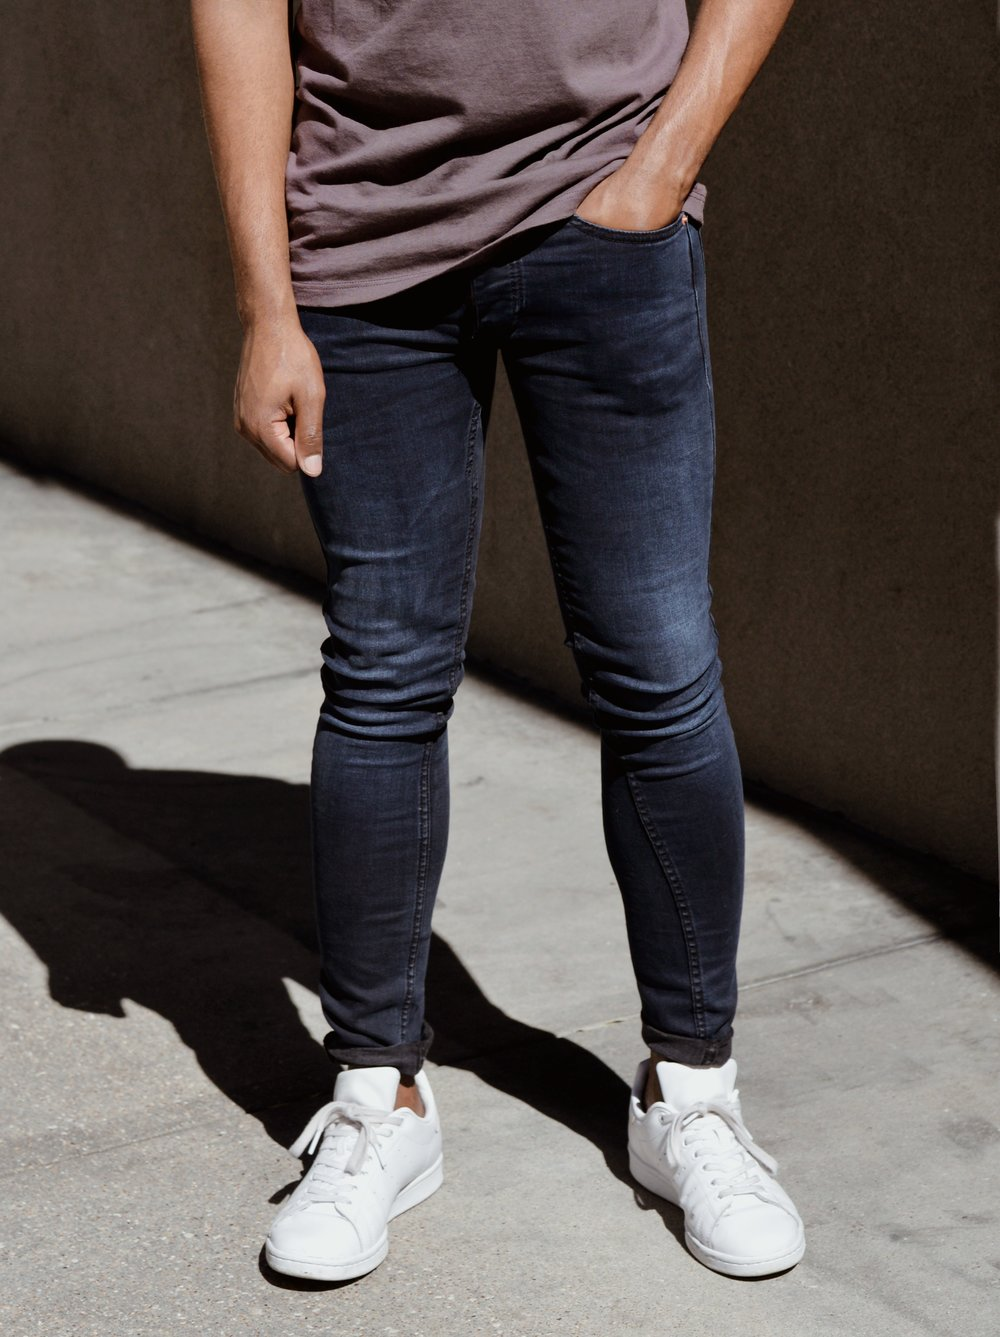 The-Look-Principle-Topman-Denim-A Celebration-Of-The-Fabric-We Live-In-9.jpg